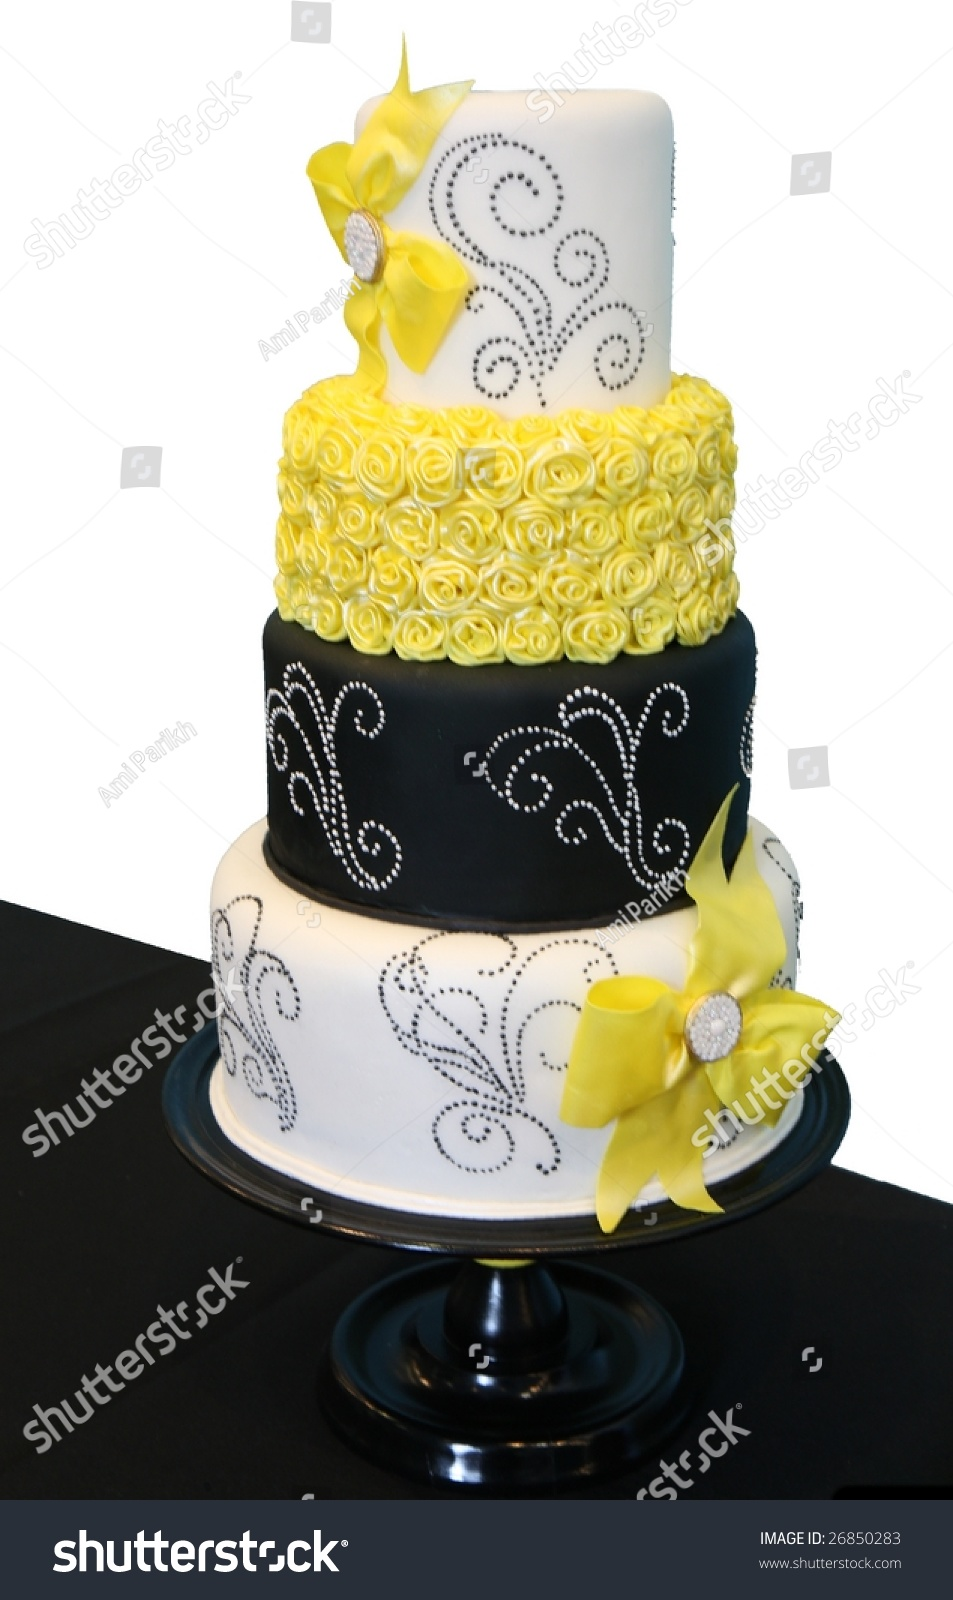 Black White Patterned Wedding Cake Yellow Stock Photo (Edit Now ...